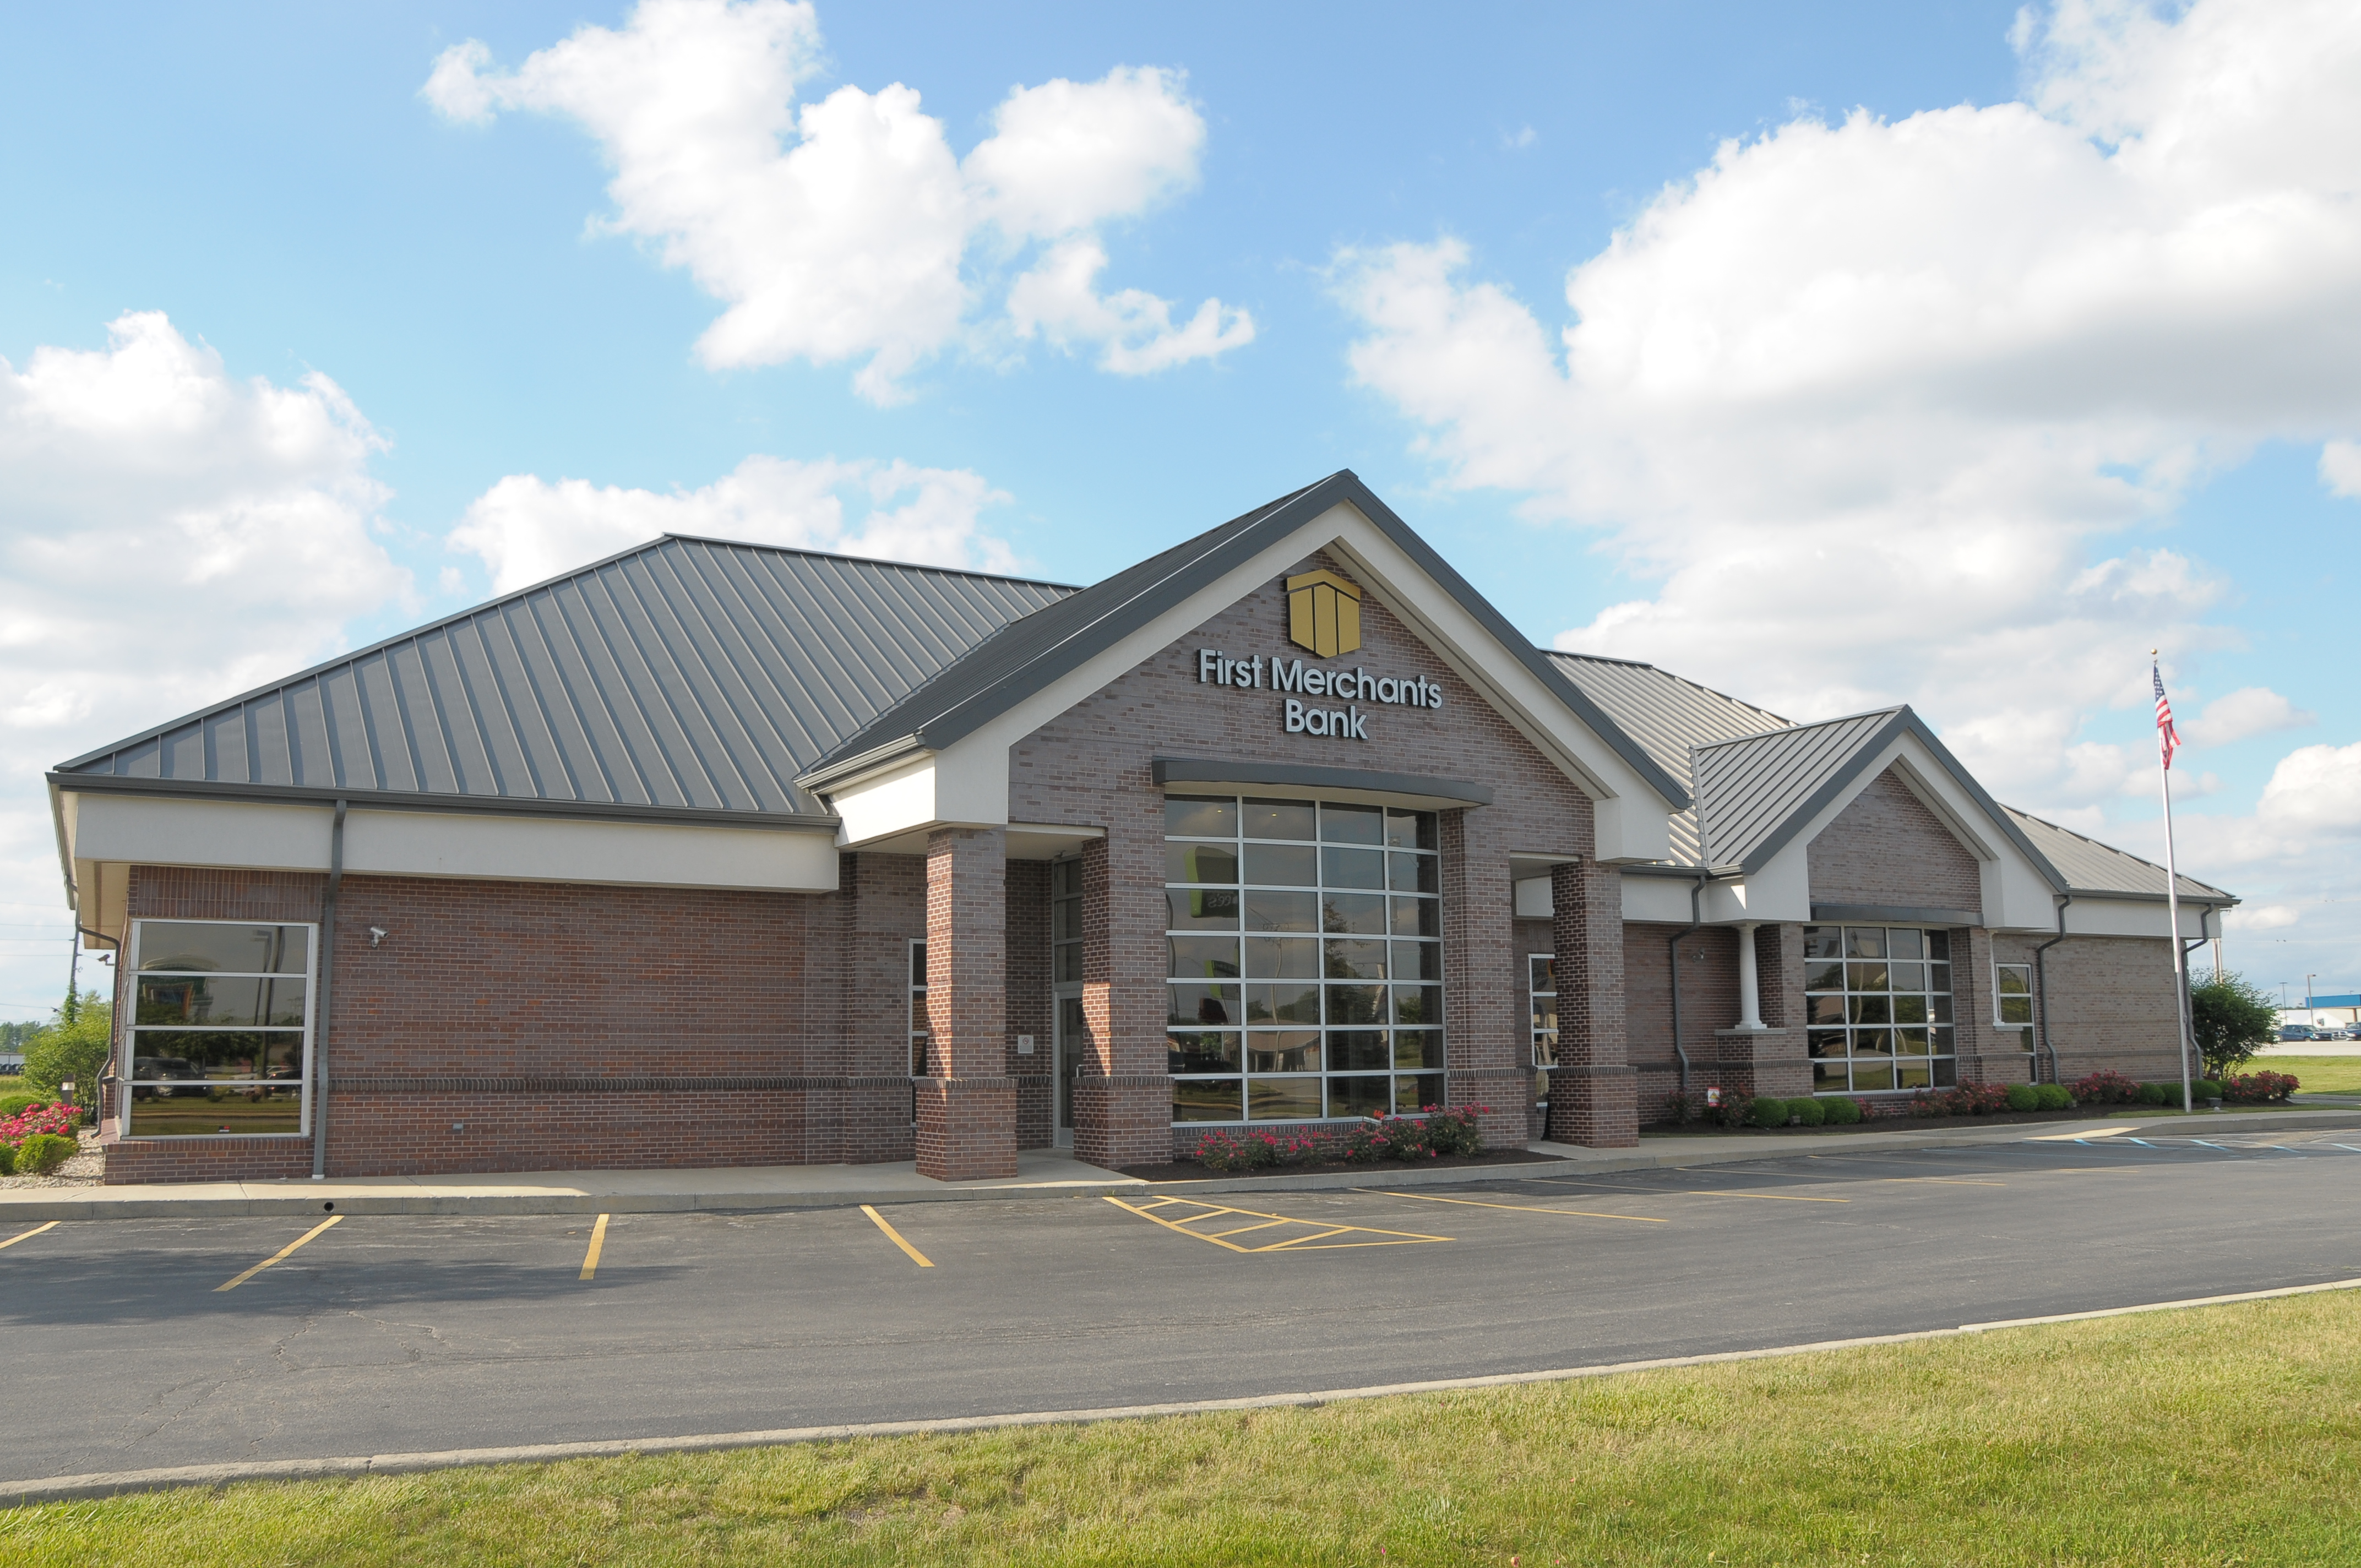 First Merchants Bank in Greenfield IN | Banks Near Me